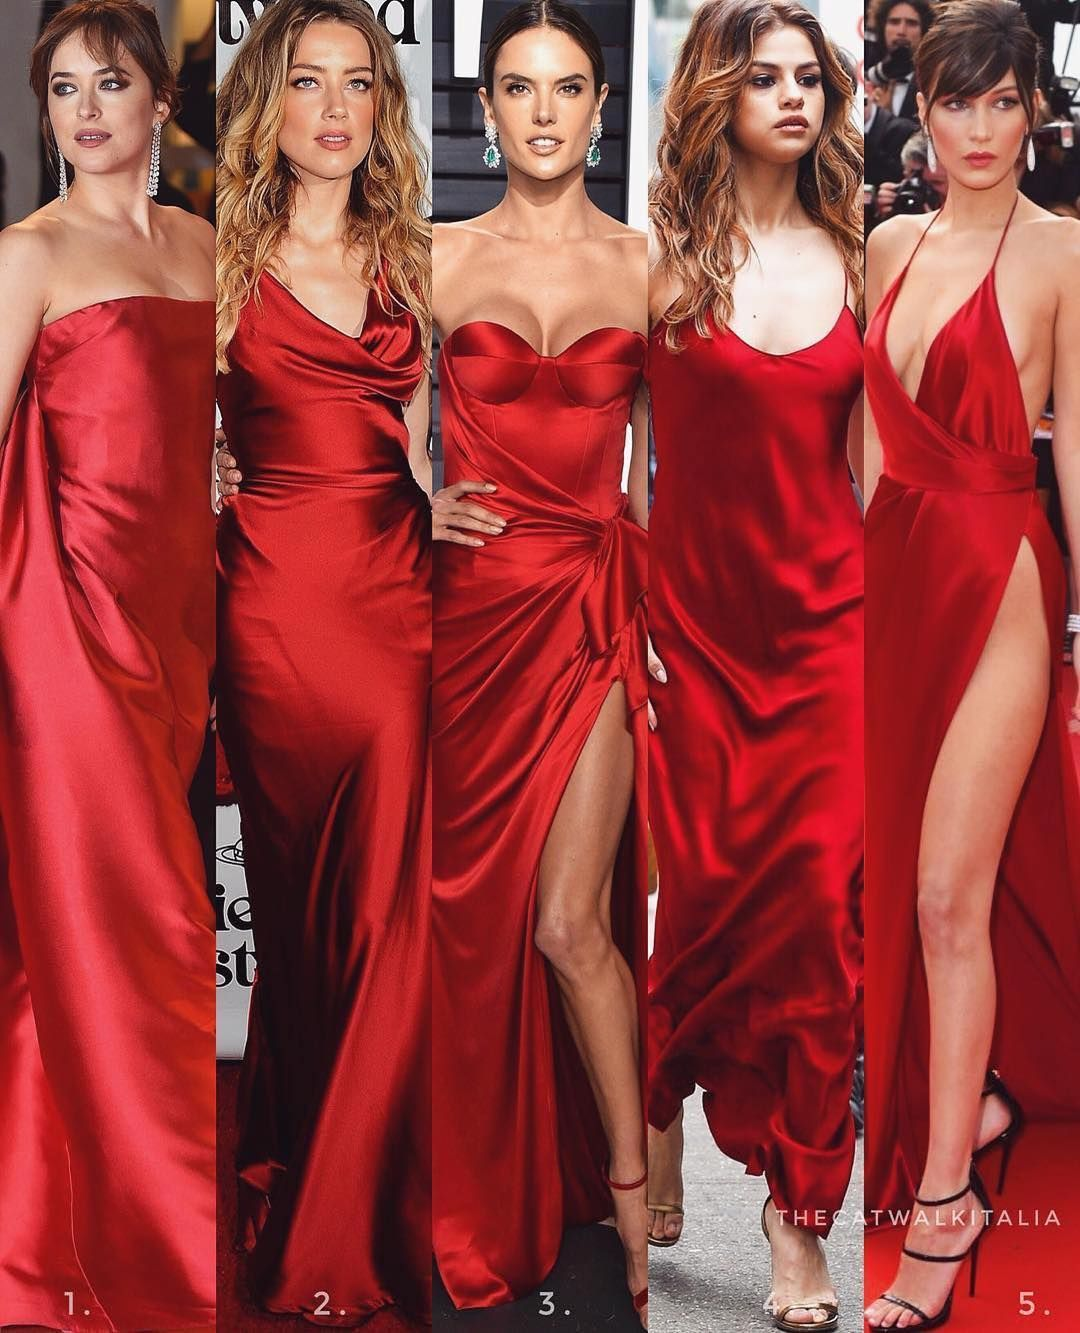 Cat Shim American Beauty Star On Instagram Which Red Silk Dress 1 2 3 4 Or 5 Credit Red Silk Dress Red Silk Prom Dress Silk Bridesmaid Dresses